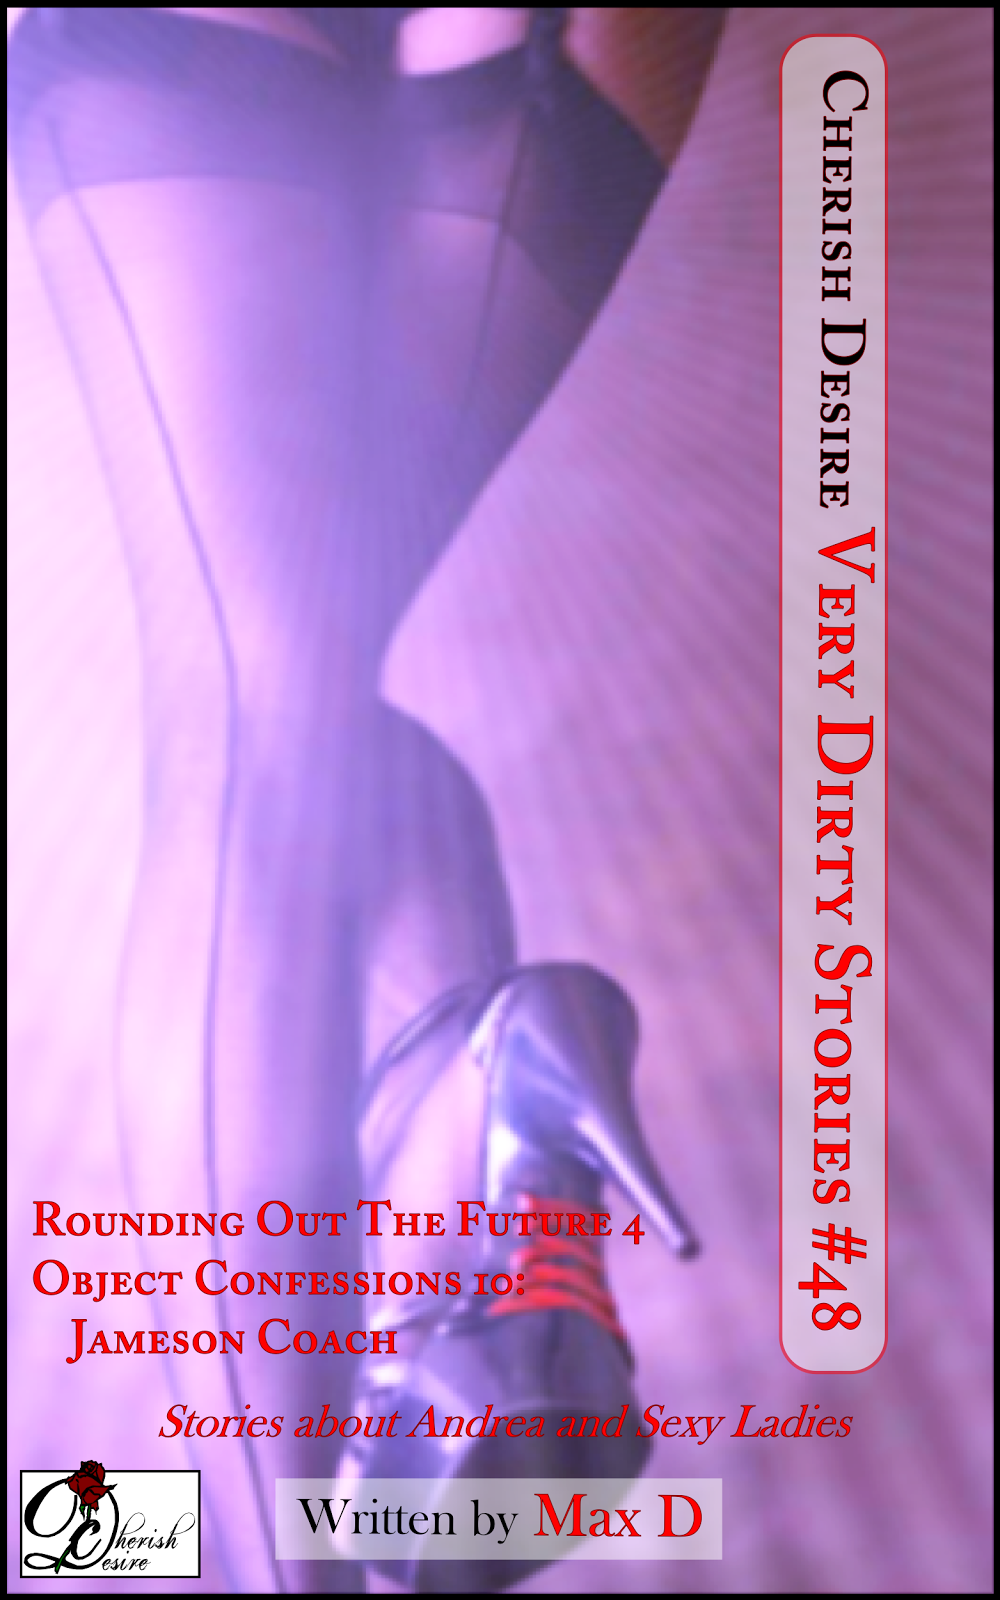 Cherish Desire: Very Dirty Stories #48, Max D, erotica